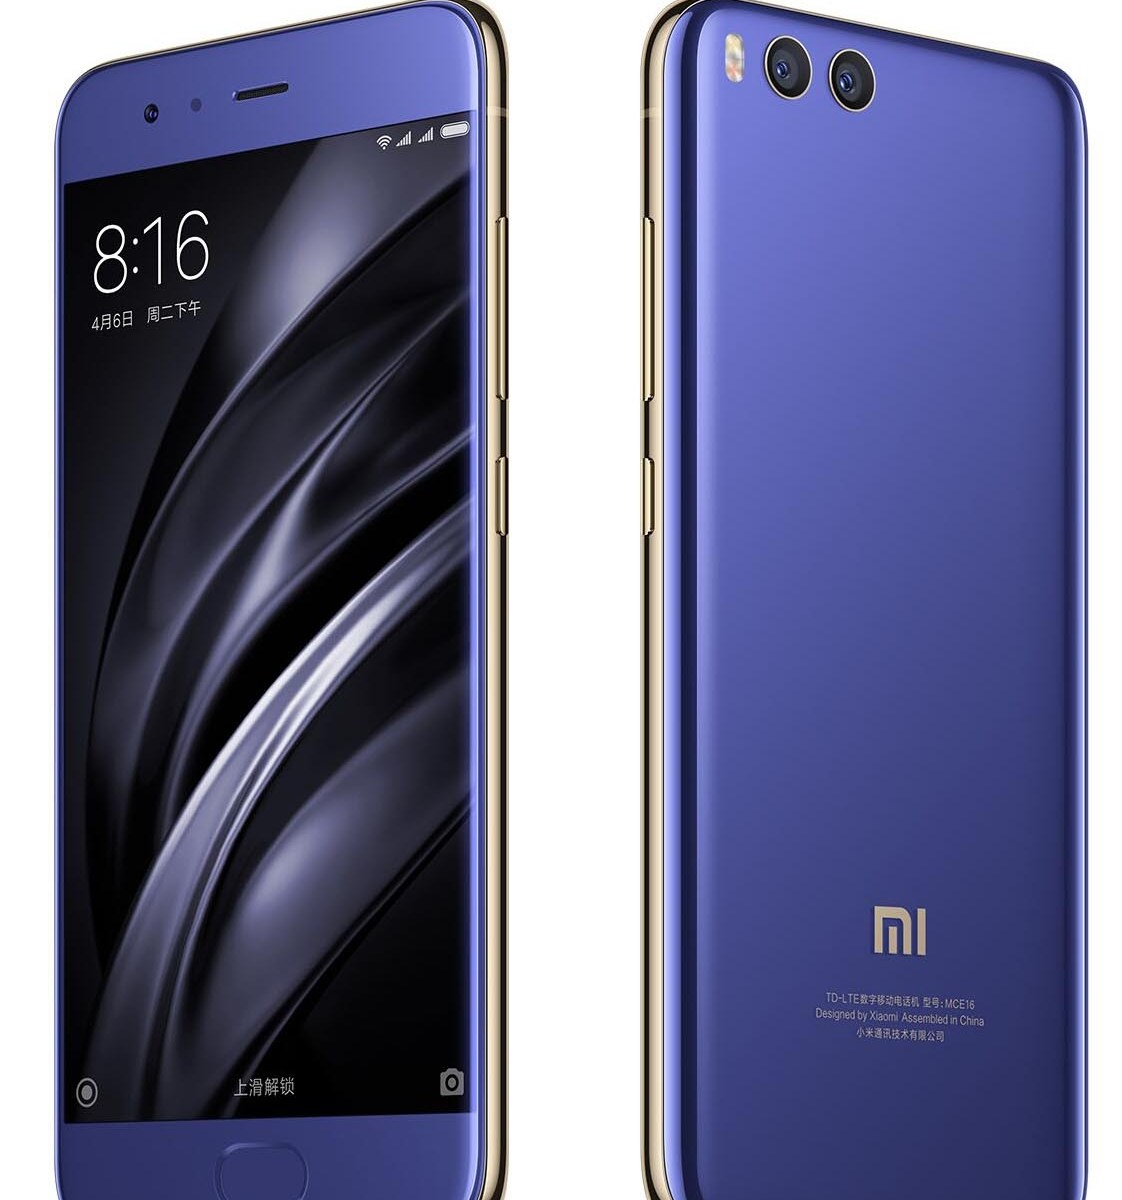 Android 8.0 Oreo for Mi 6